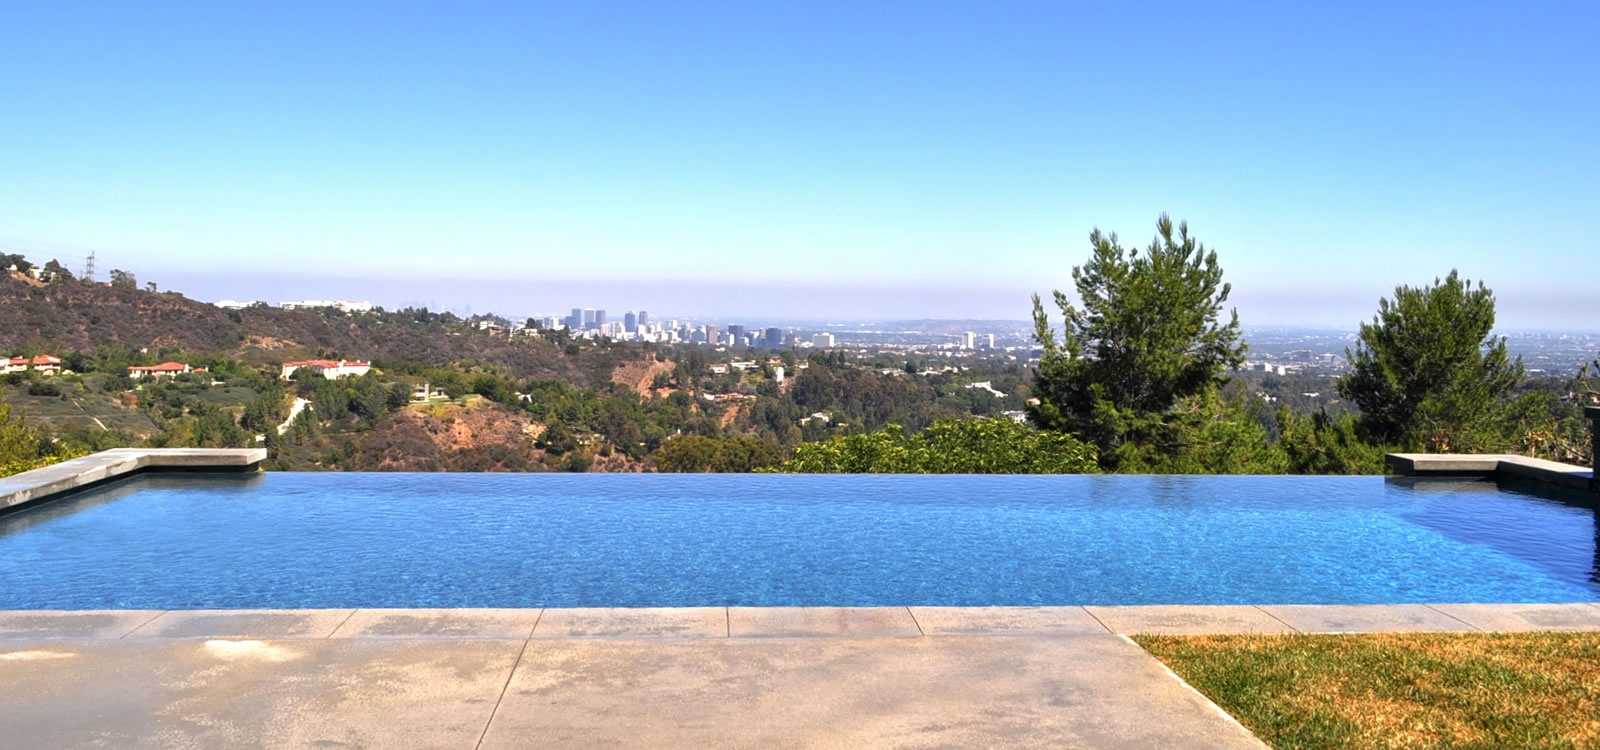 Los angeles vanishing edge pool design w elevated spa for Pool design los angeles